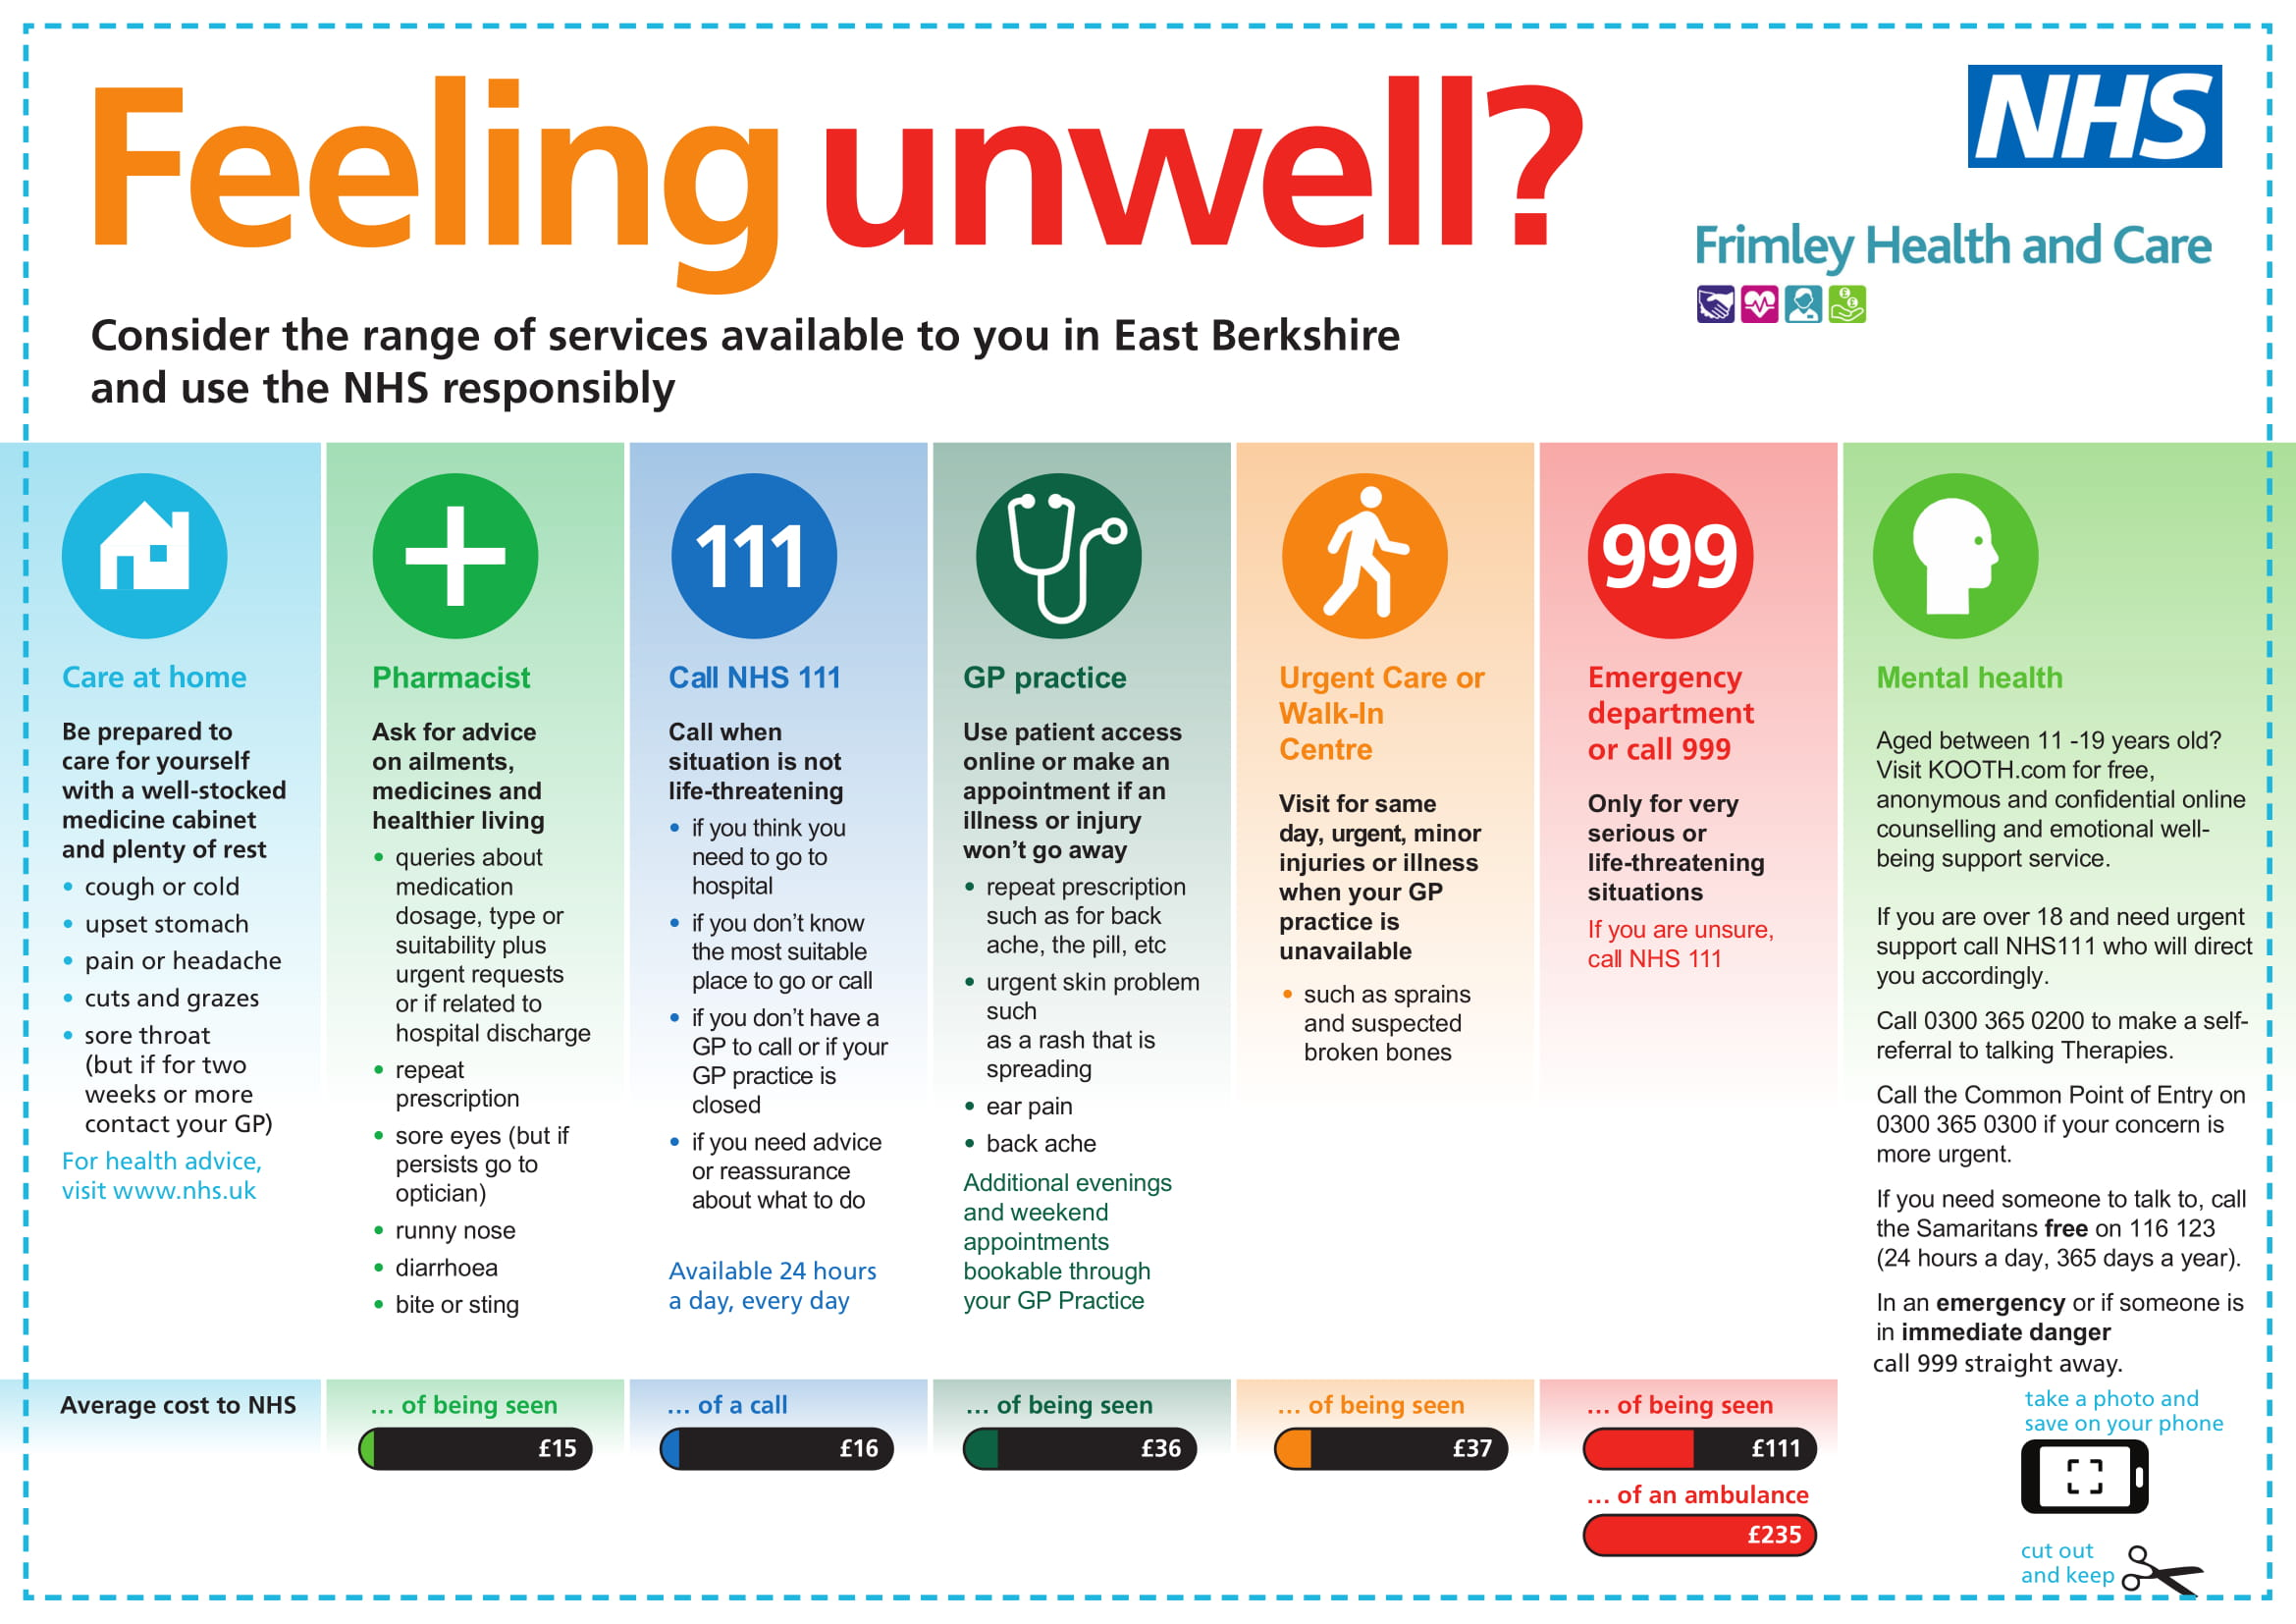 East Berkshire Feeling unwell where to go FINAL 1